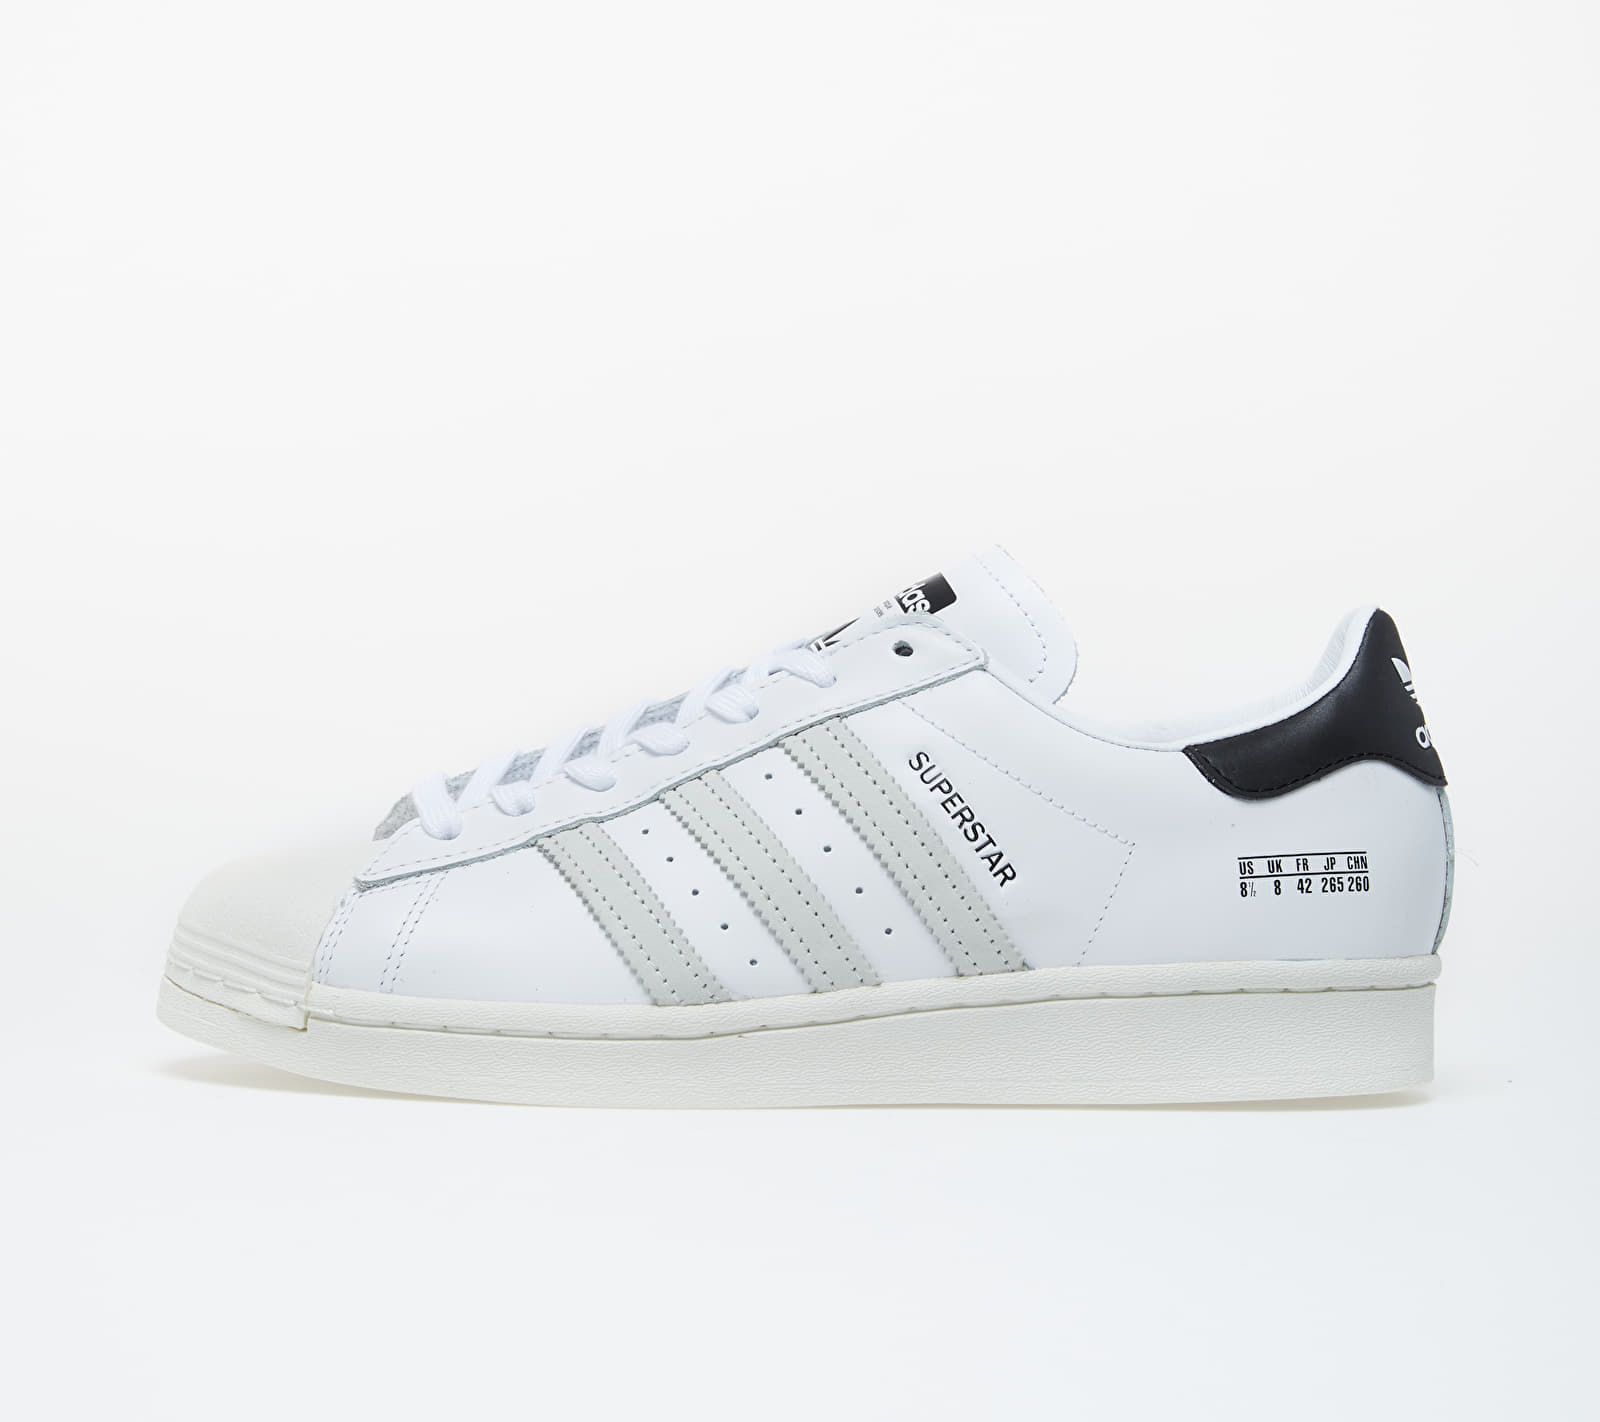 adidas Superstar Ftw White/ Ftw White/ Core Black EUR 47 1/3